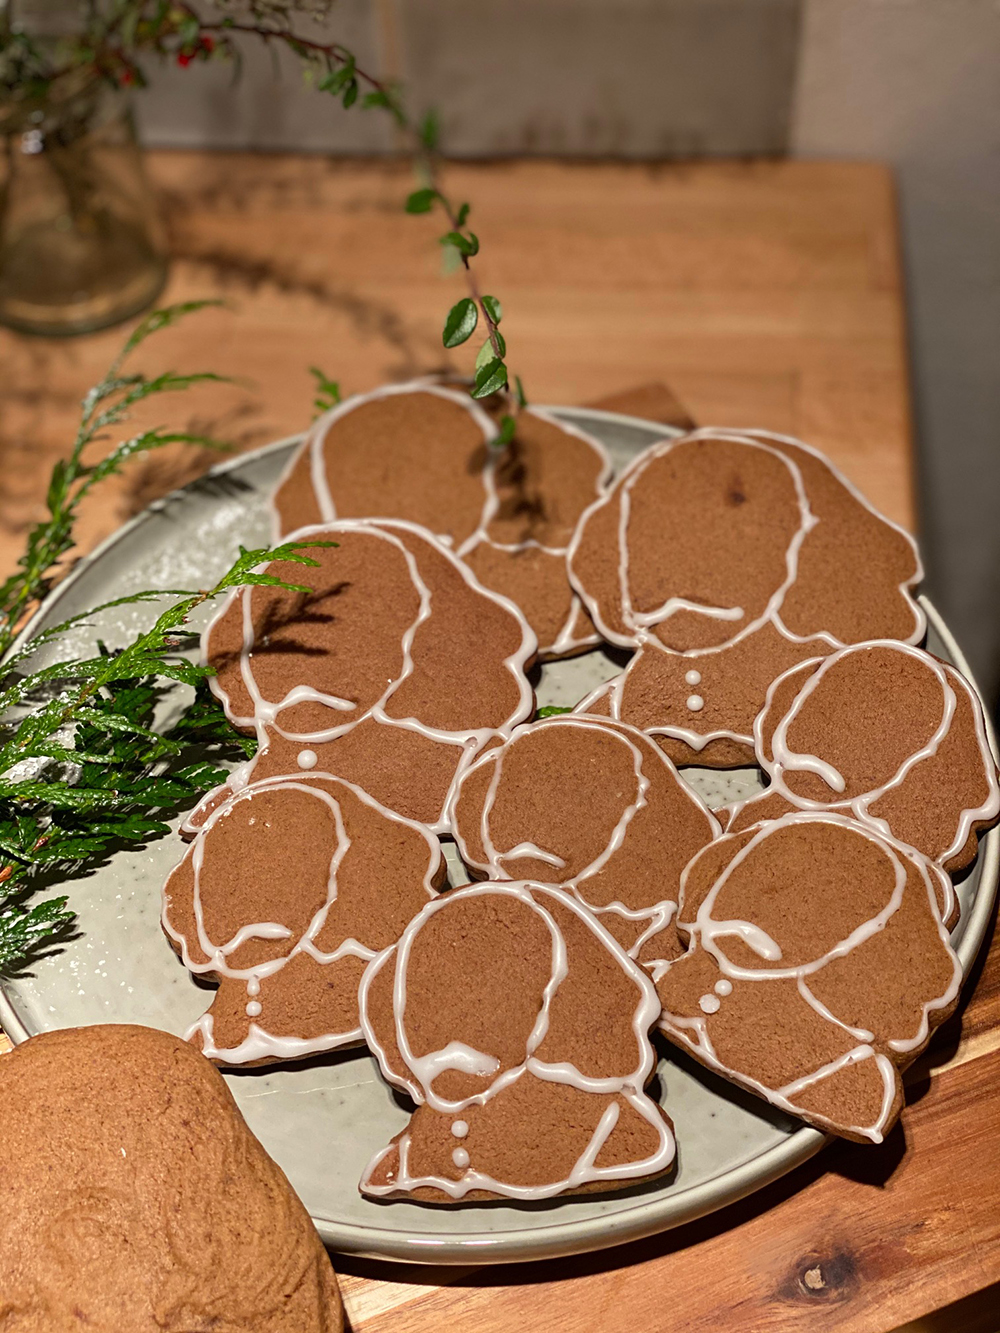 Gingerbread biscuits in the shape of Shakespeare's face rest on a plate, with icing sugar detail.